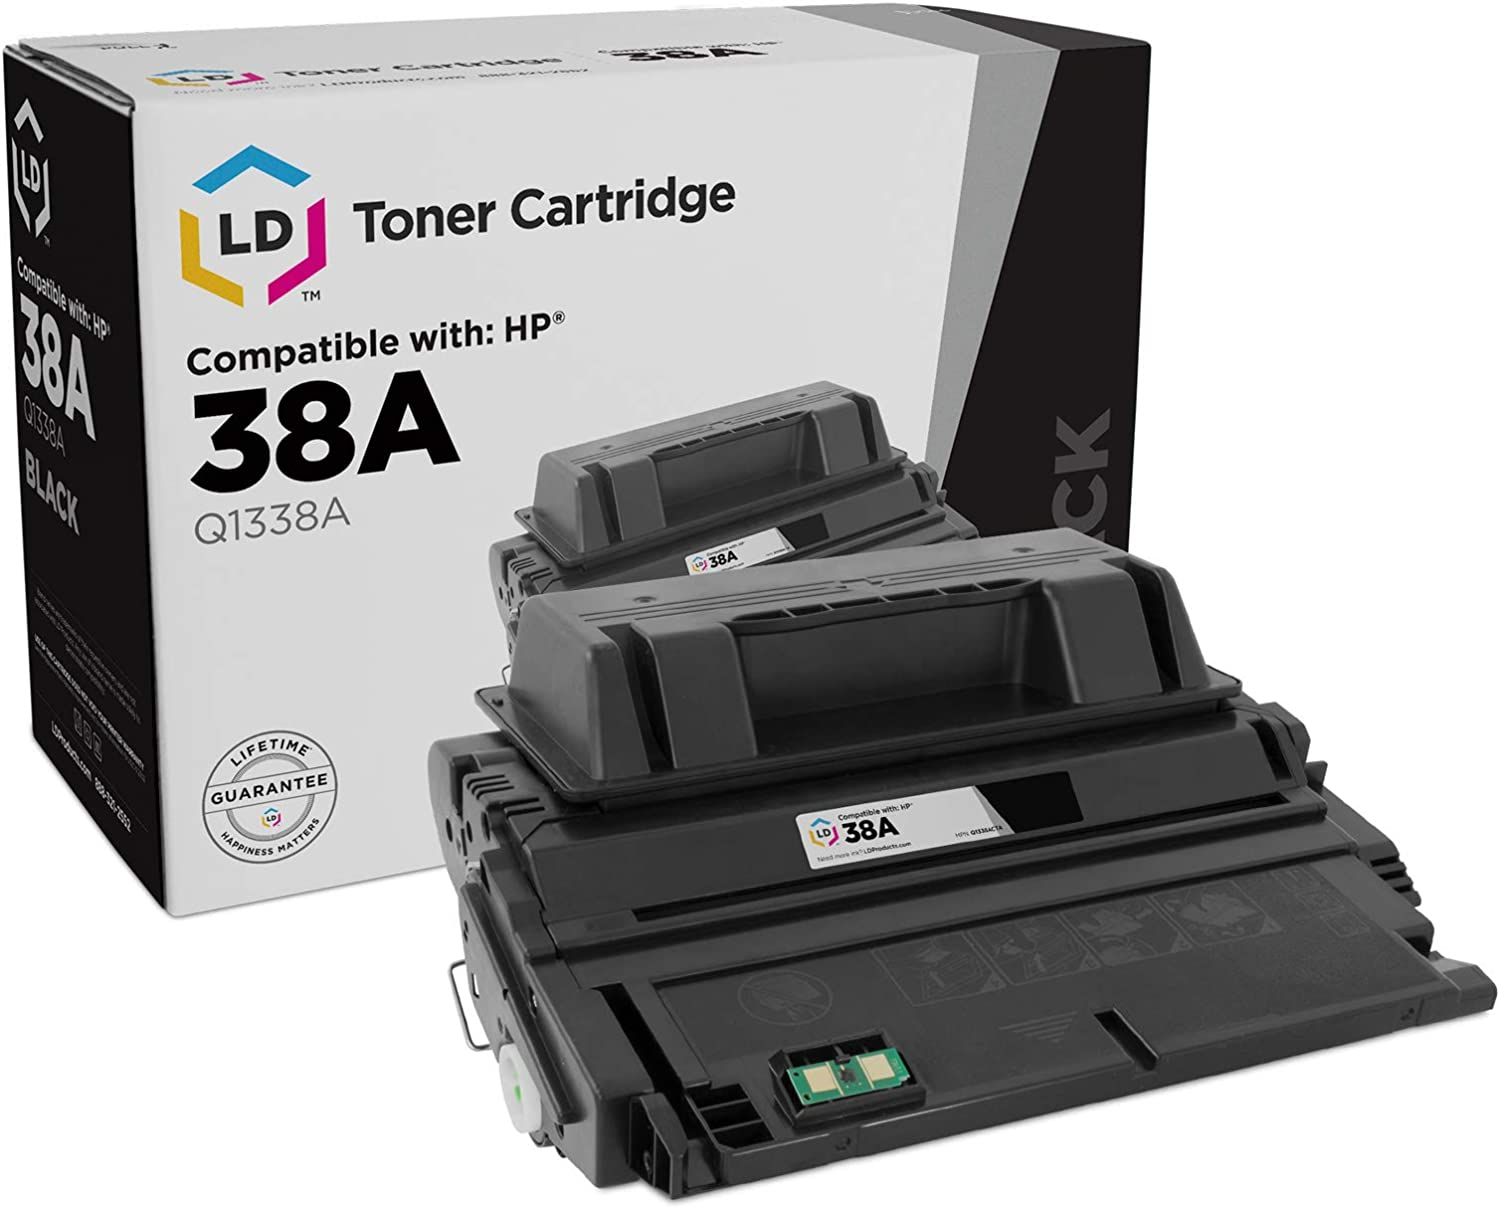 LD Compatible Toner Cartridge Replacements for HP 38A Q1338A (Black)